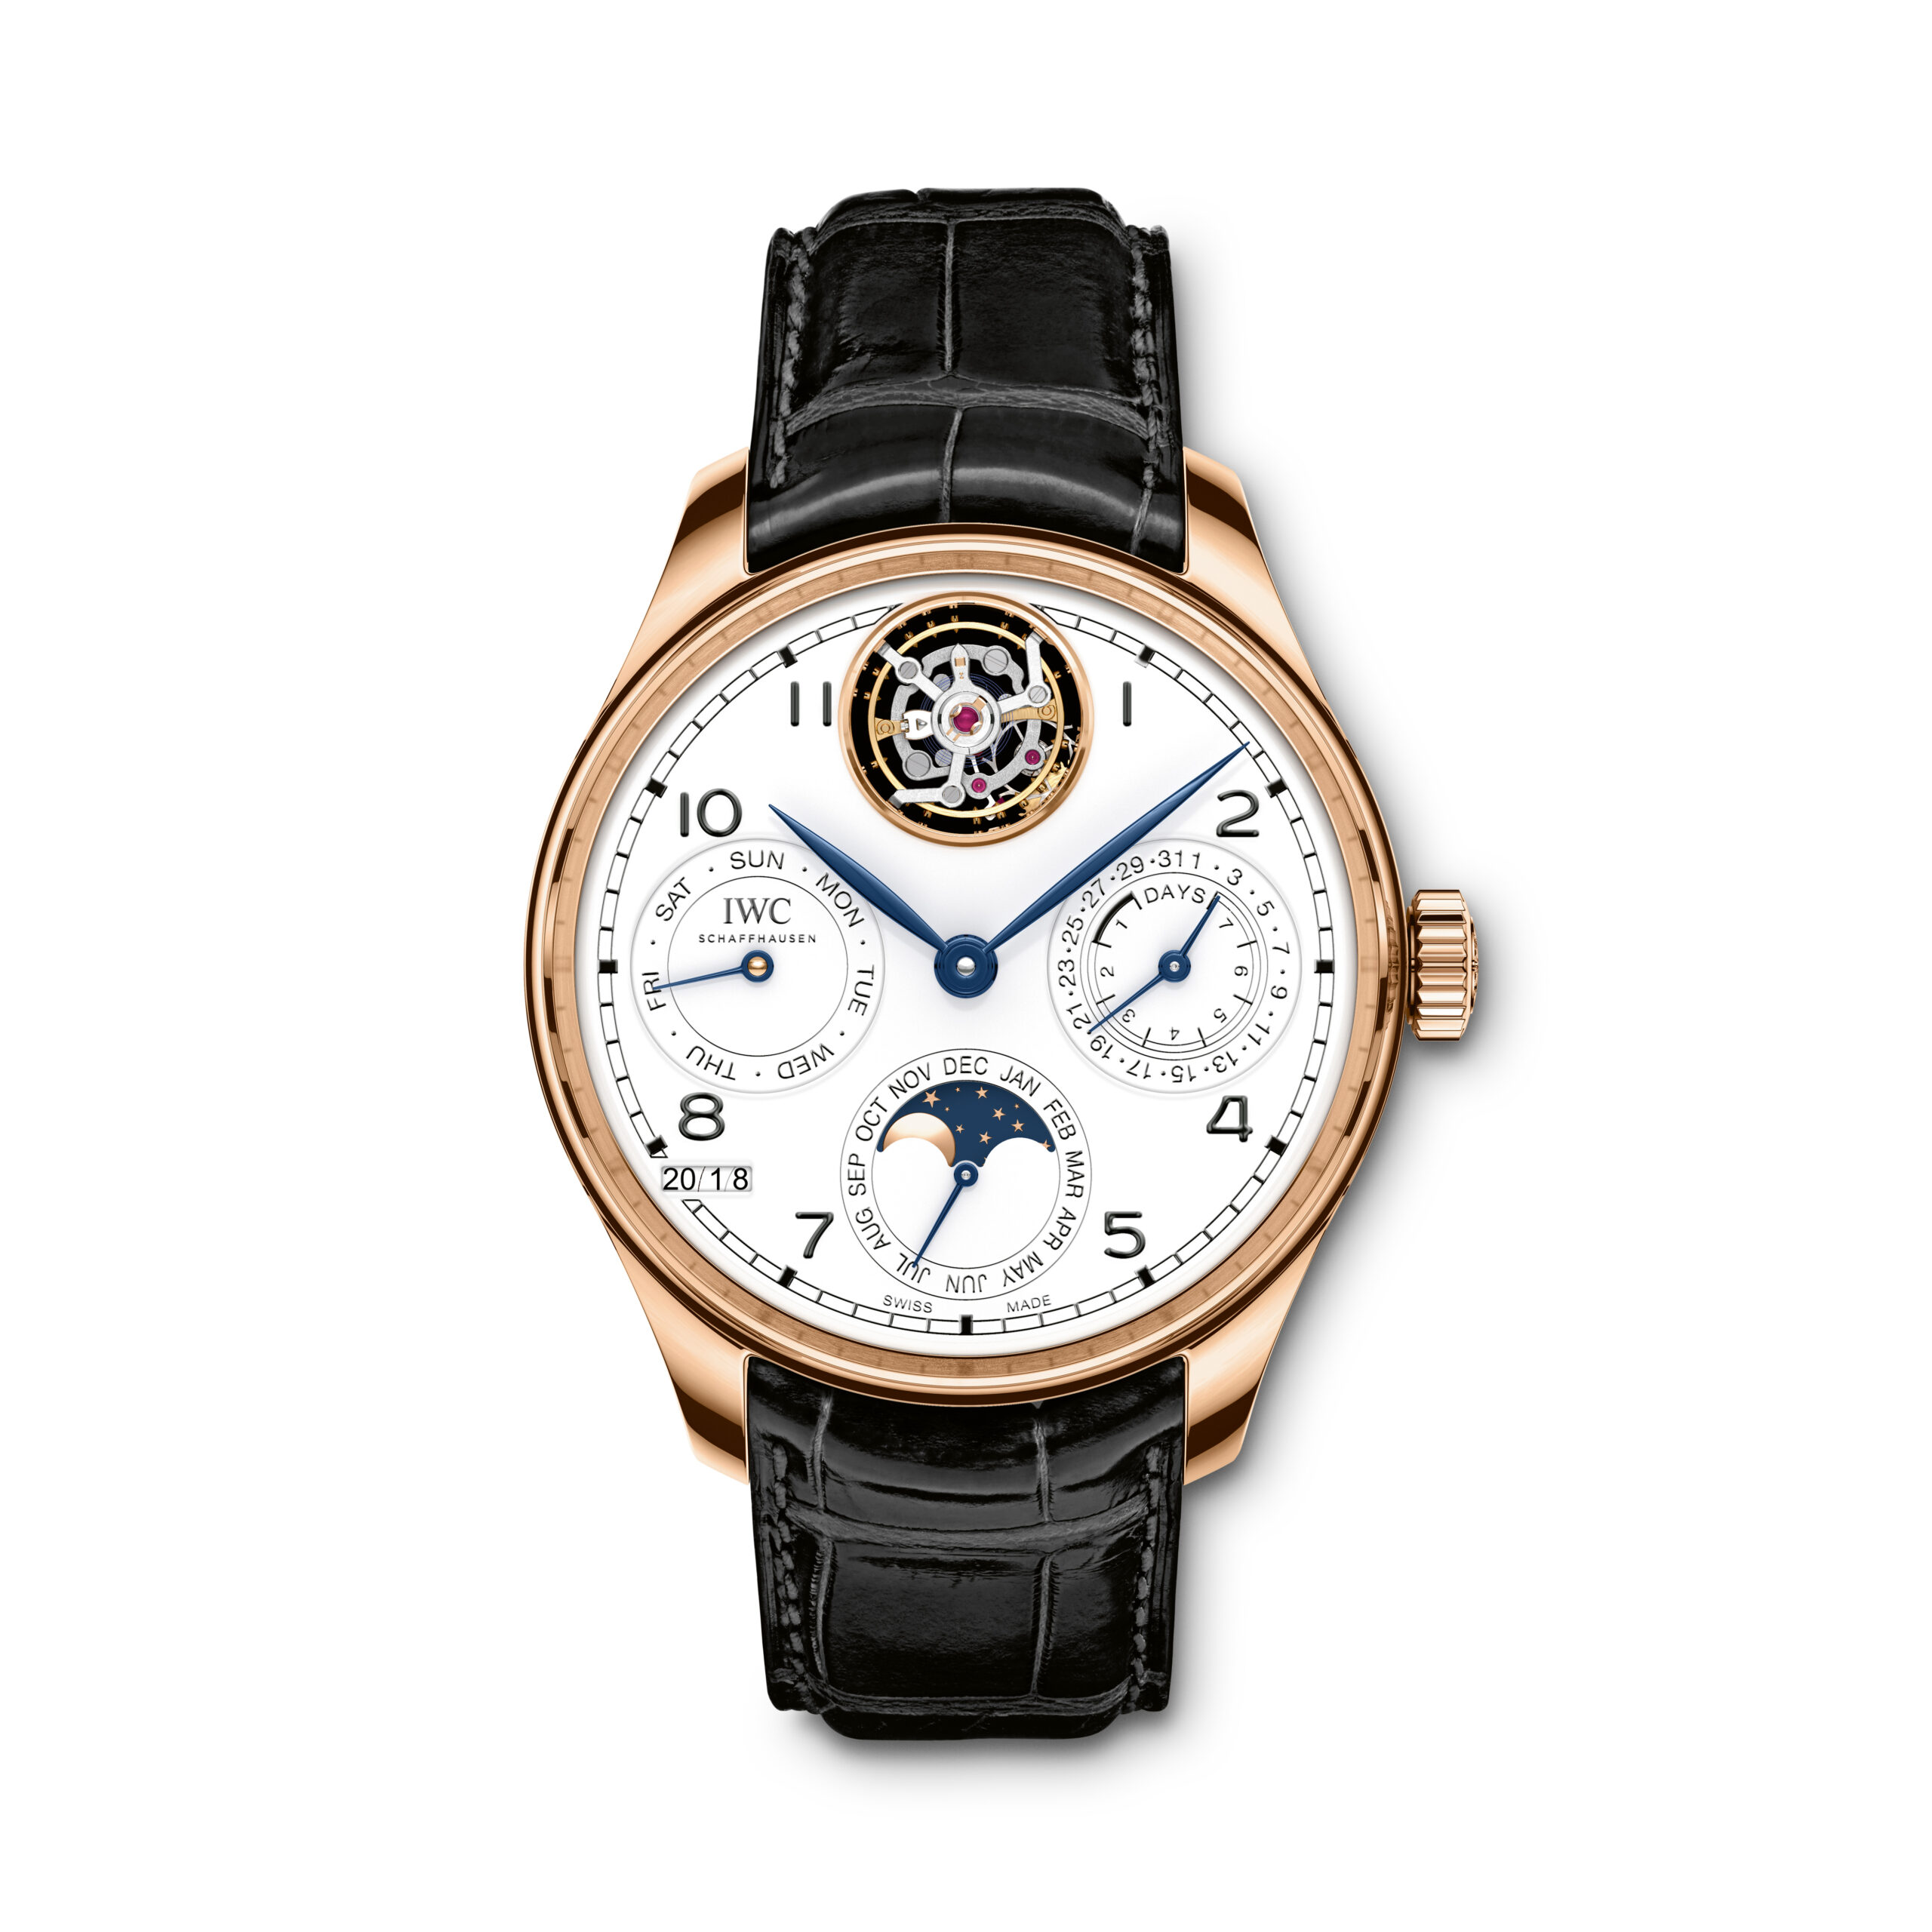 "IWC Portugieser Perpetual Calendar Tourbillon Edition ""150 Years"" This is an extension of the 51900 calibre, with the addition of a perpetual calendar. Made of 82 individual components and weighing just 0.635 grams, the tourbillon is visible at ""12 o'clock"" because the watch designers opened up the calendar advance ring and integrated the moon phase in the month display disc at ""6 o'clock"""